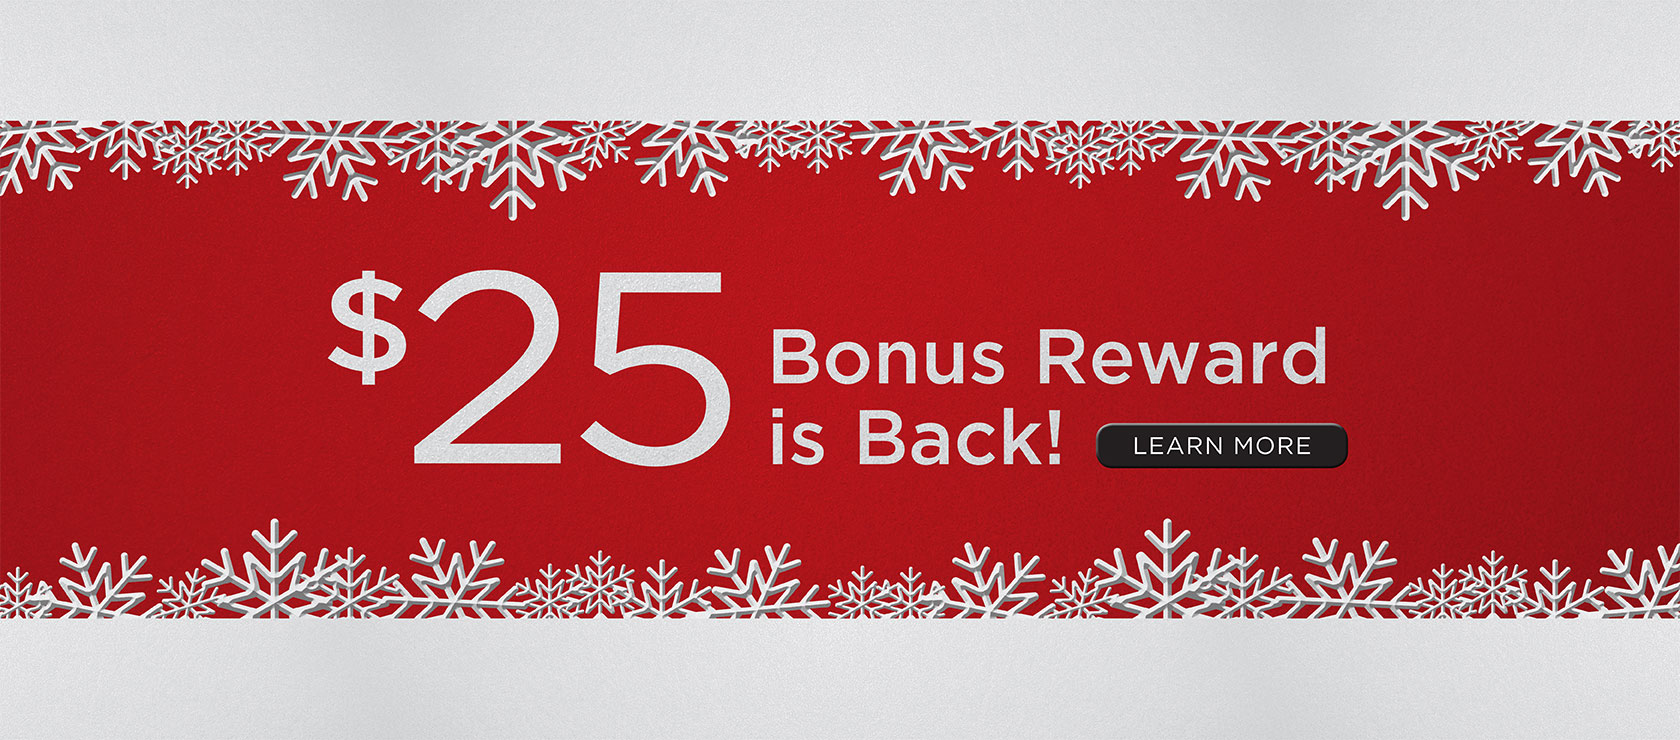 $25 bonus rewards is back! Learn More.